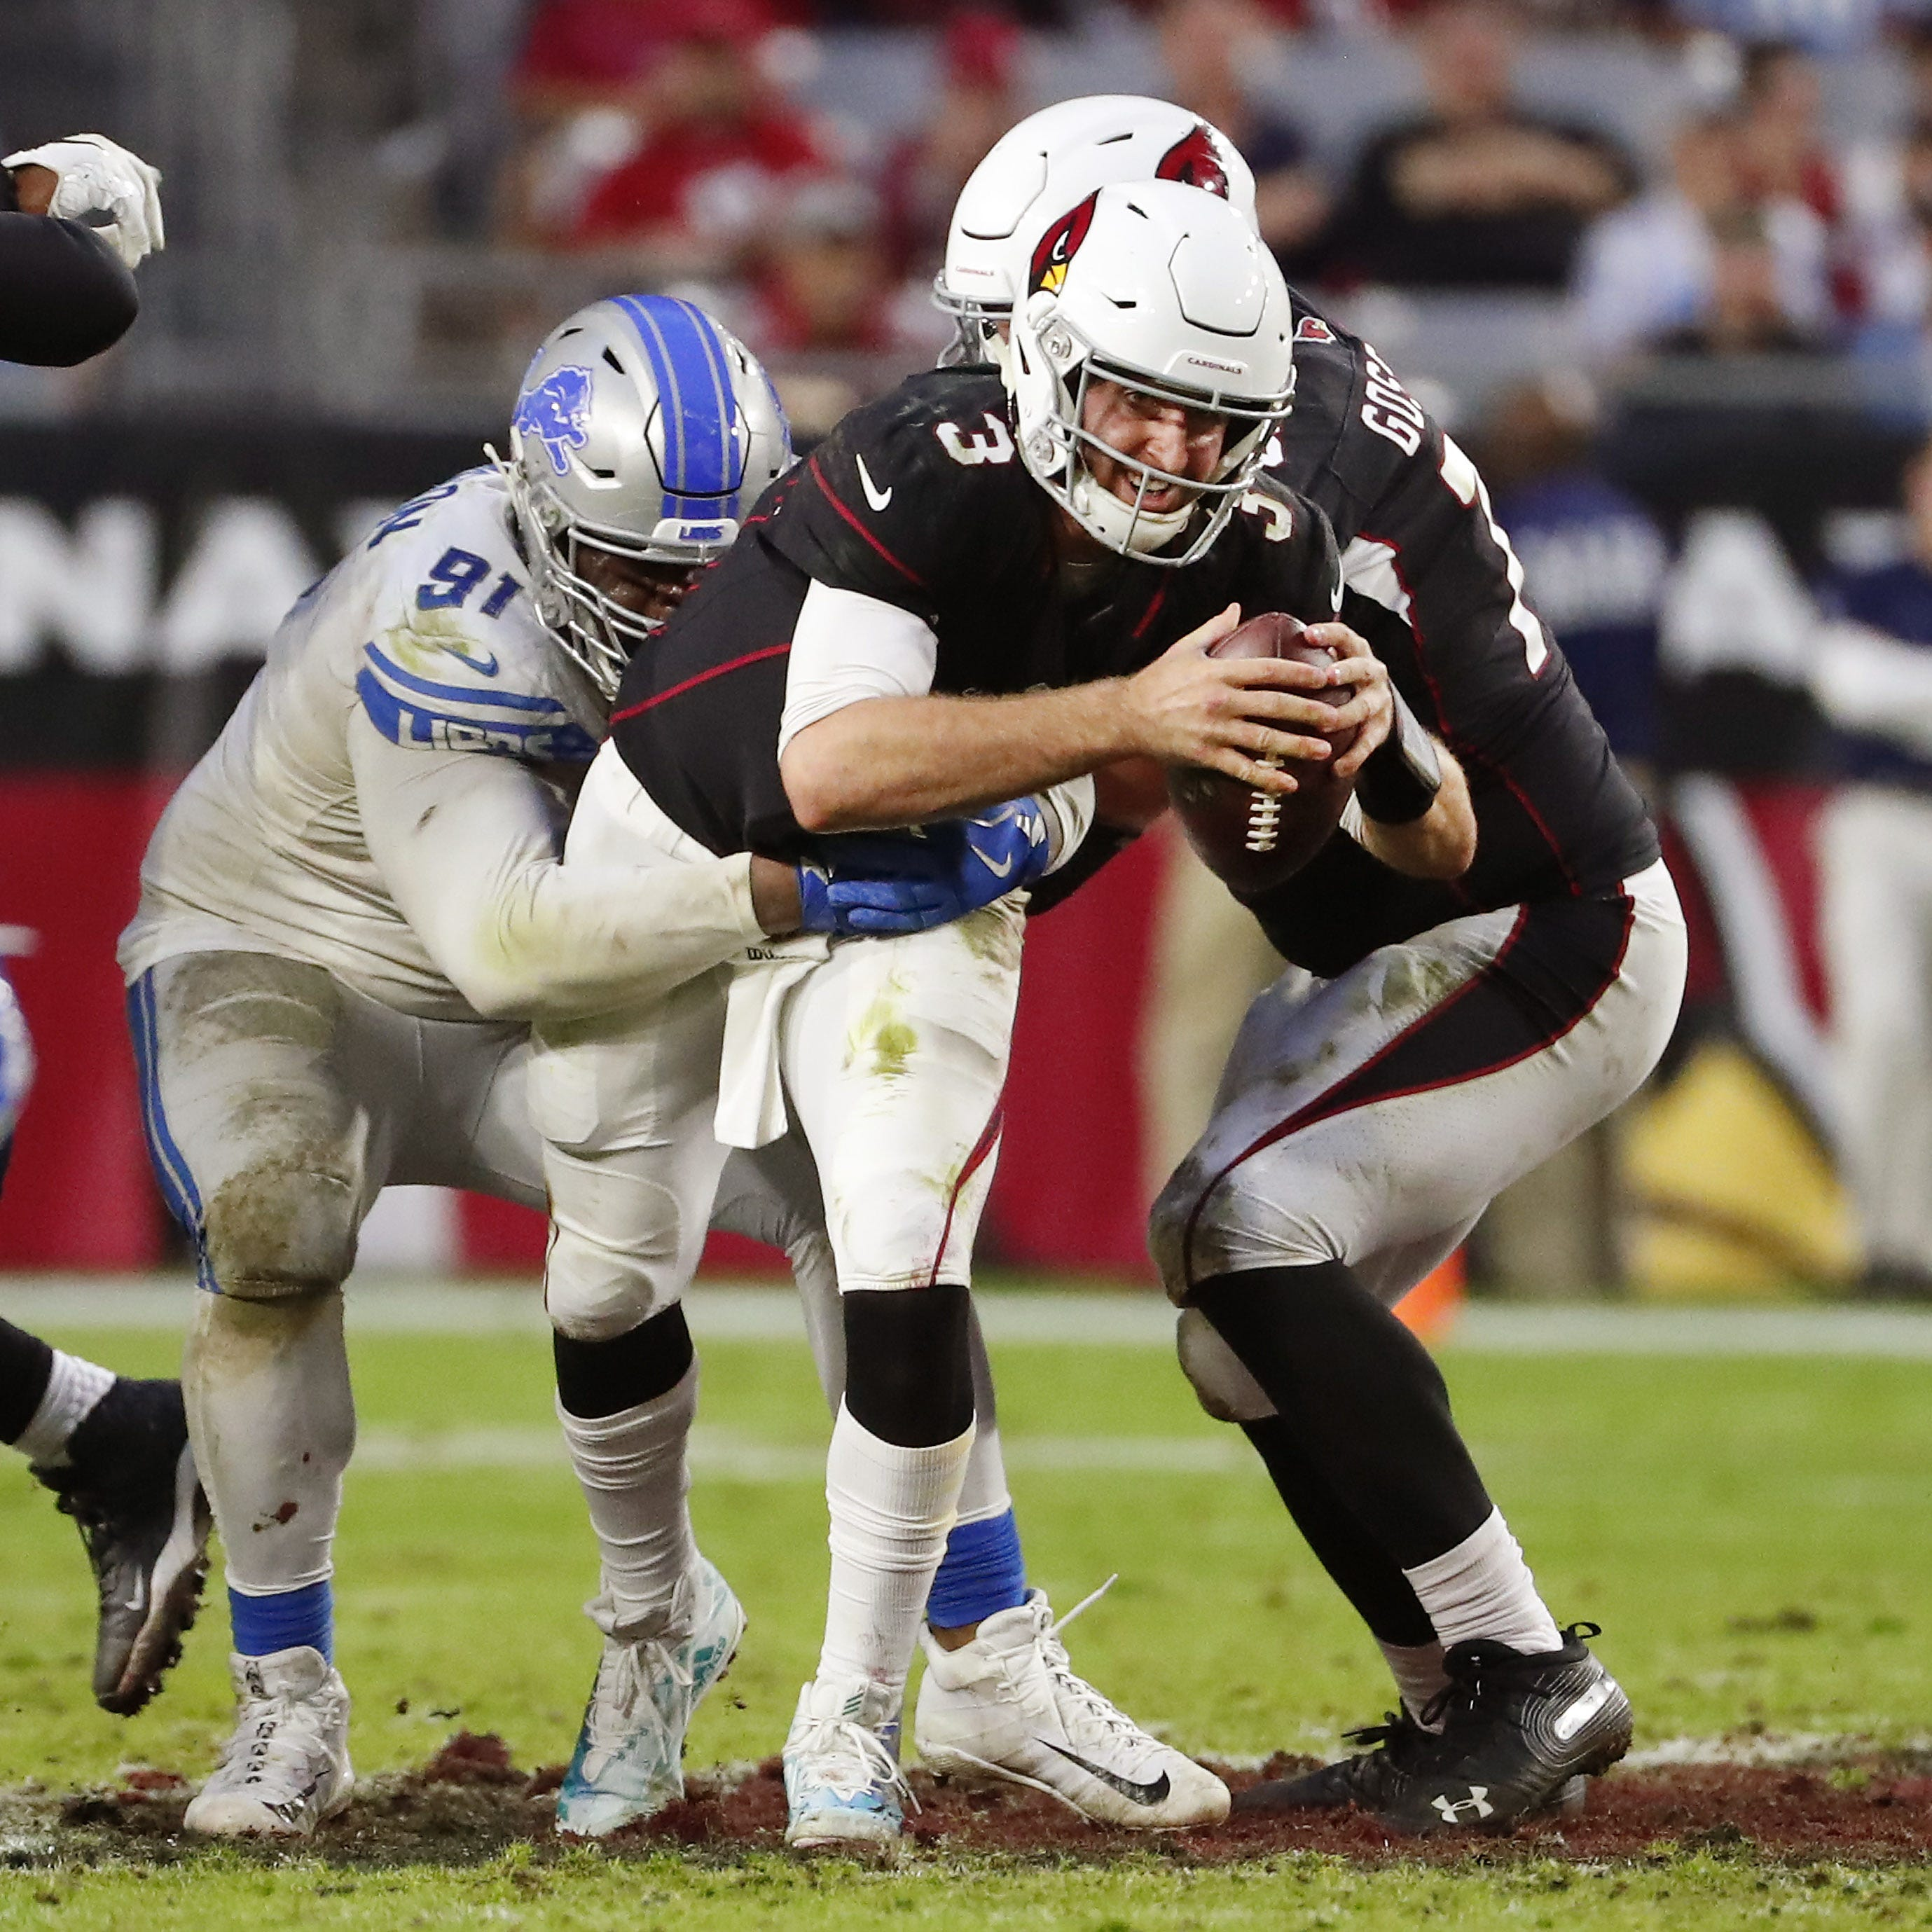 Cardinals offense manages to underachieve against Lions despite already low expectations